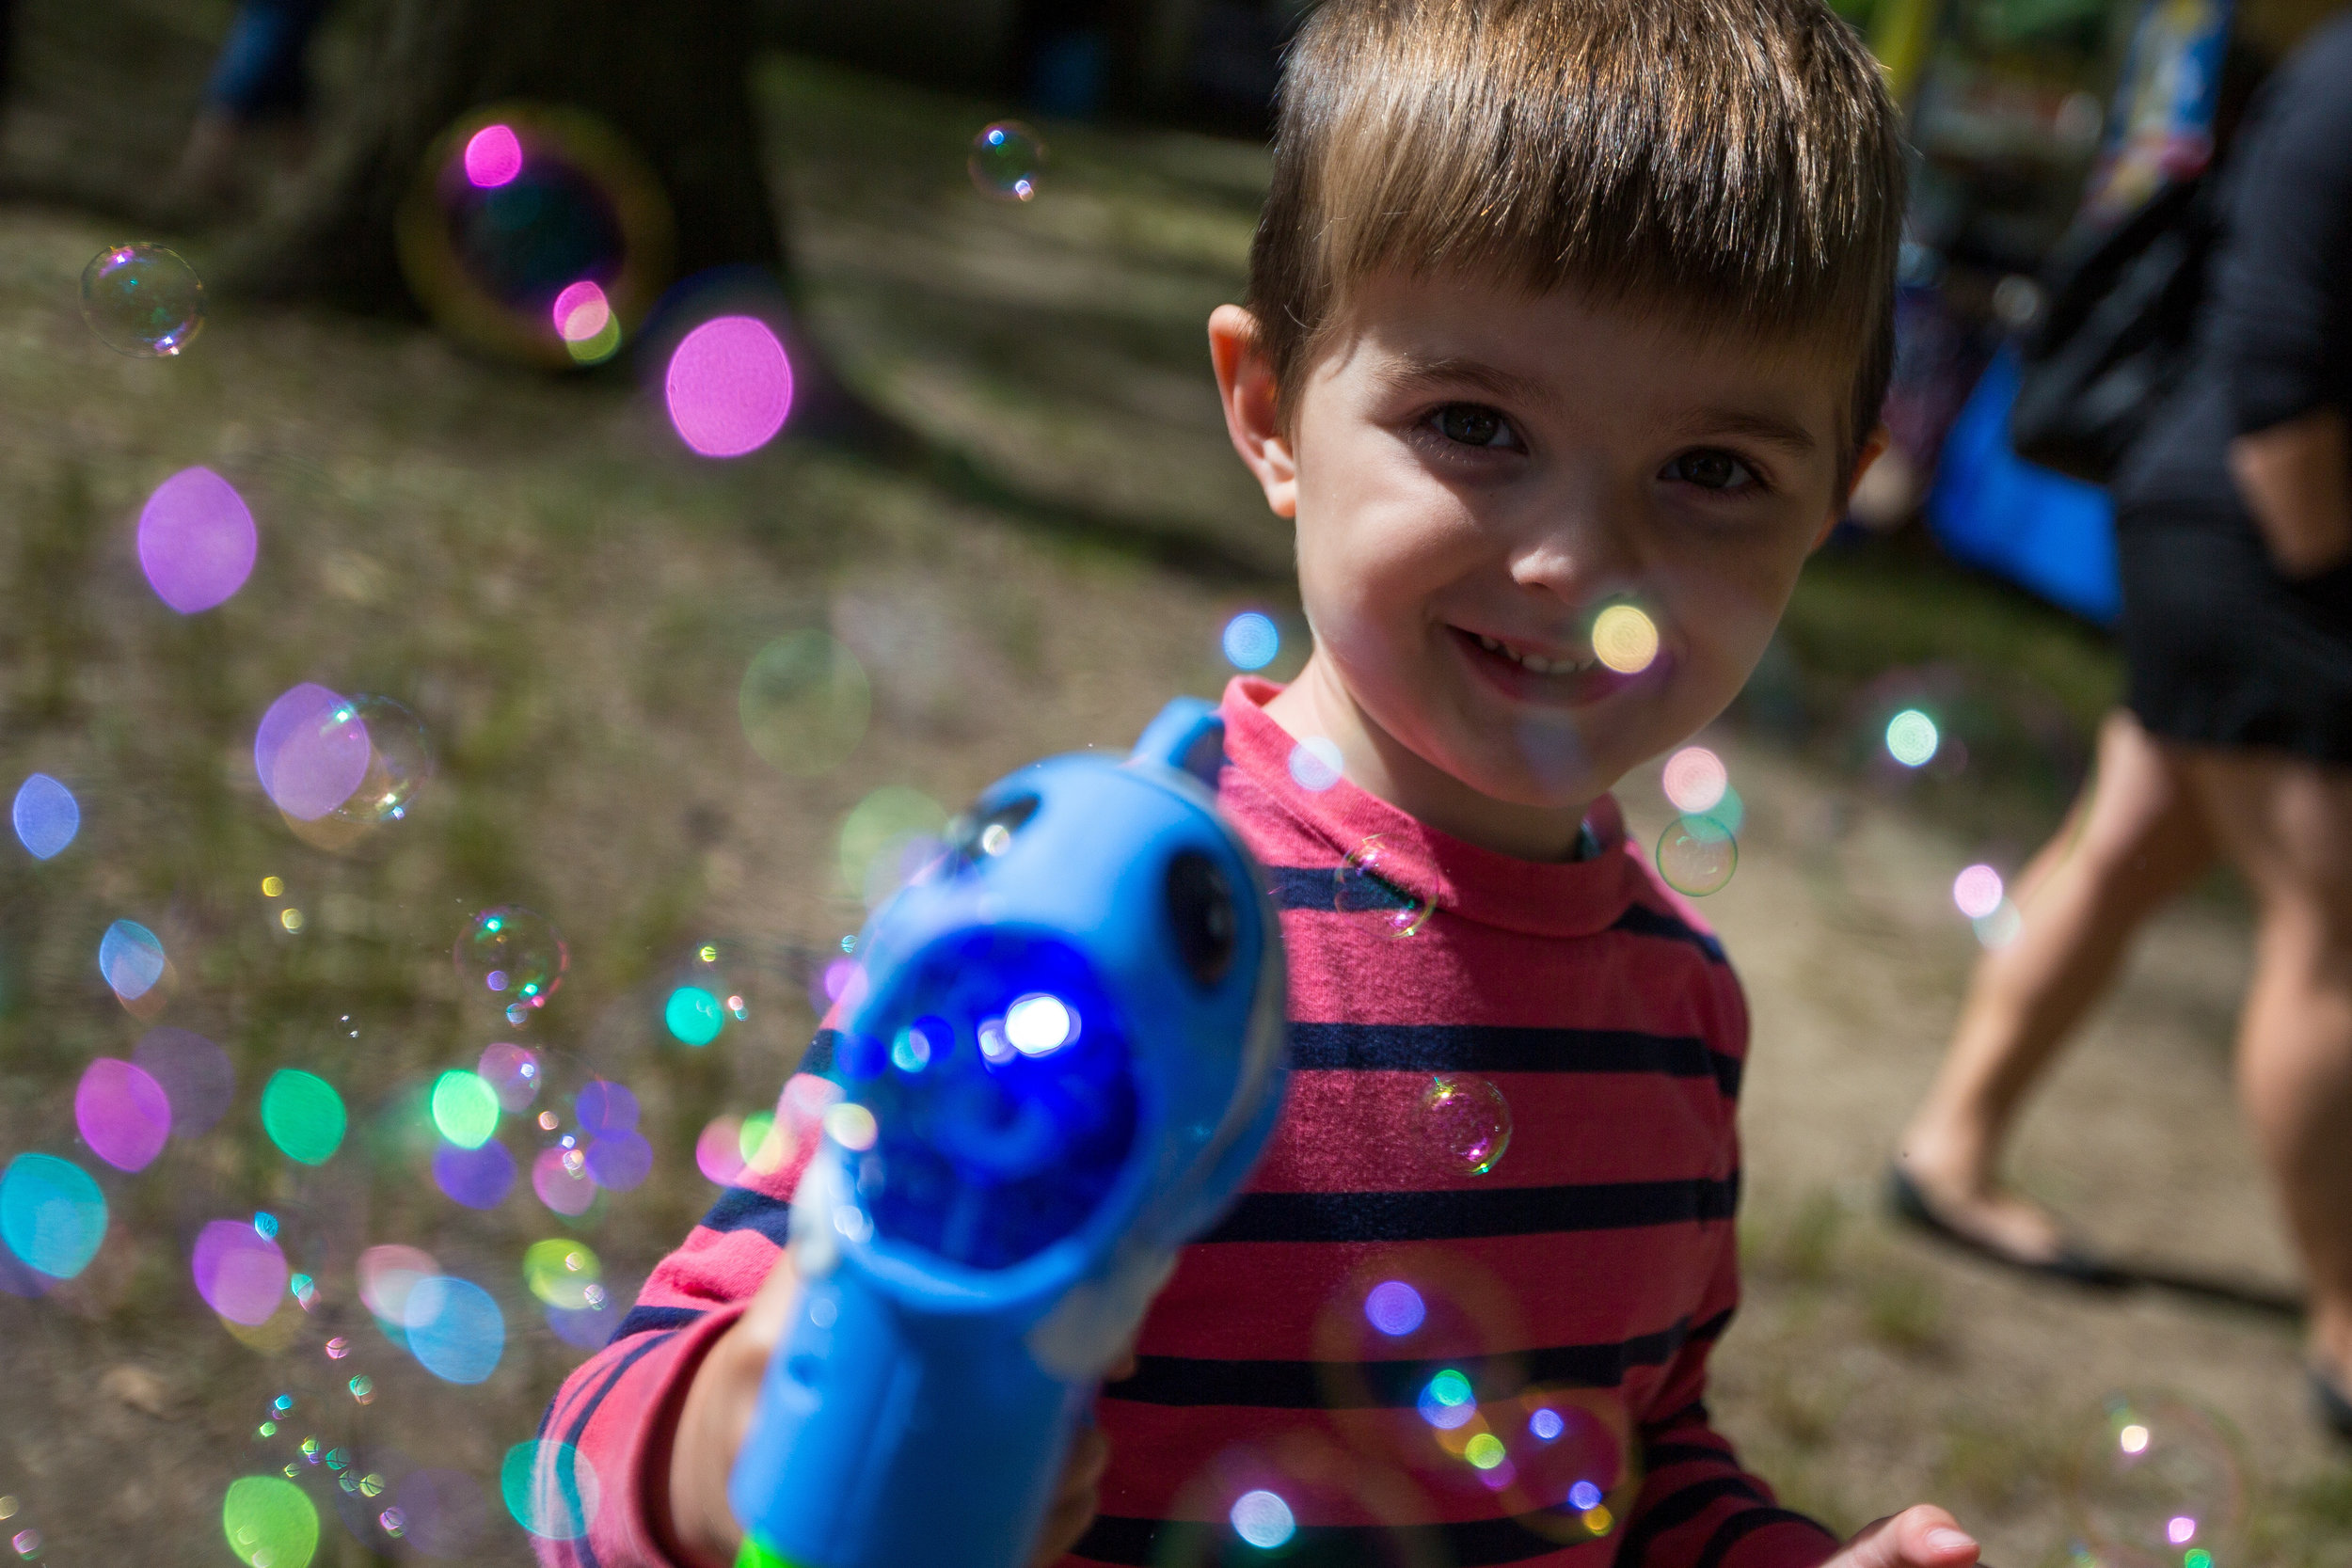 Benson Puff, 3, plays with a bubble machine at the Ellwood City Arts Festival at Ewing Park on Saturday morning.